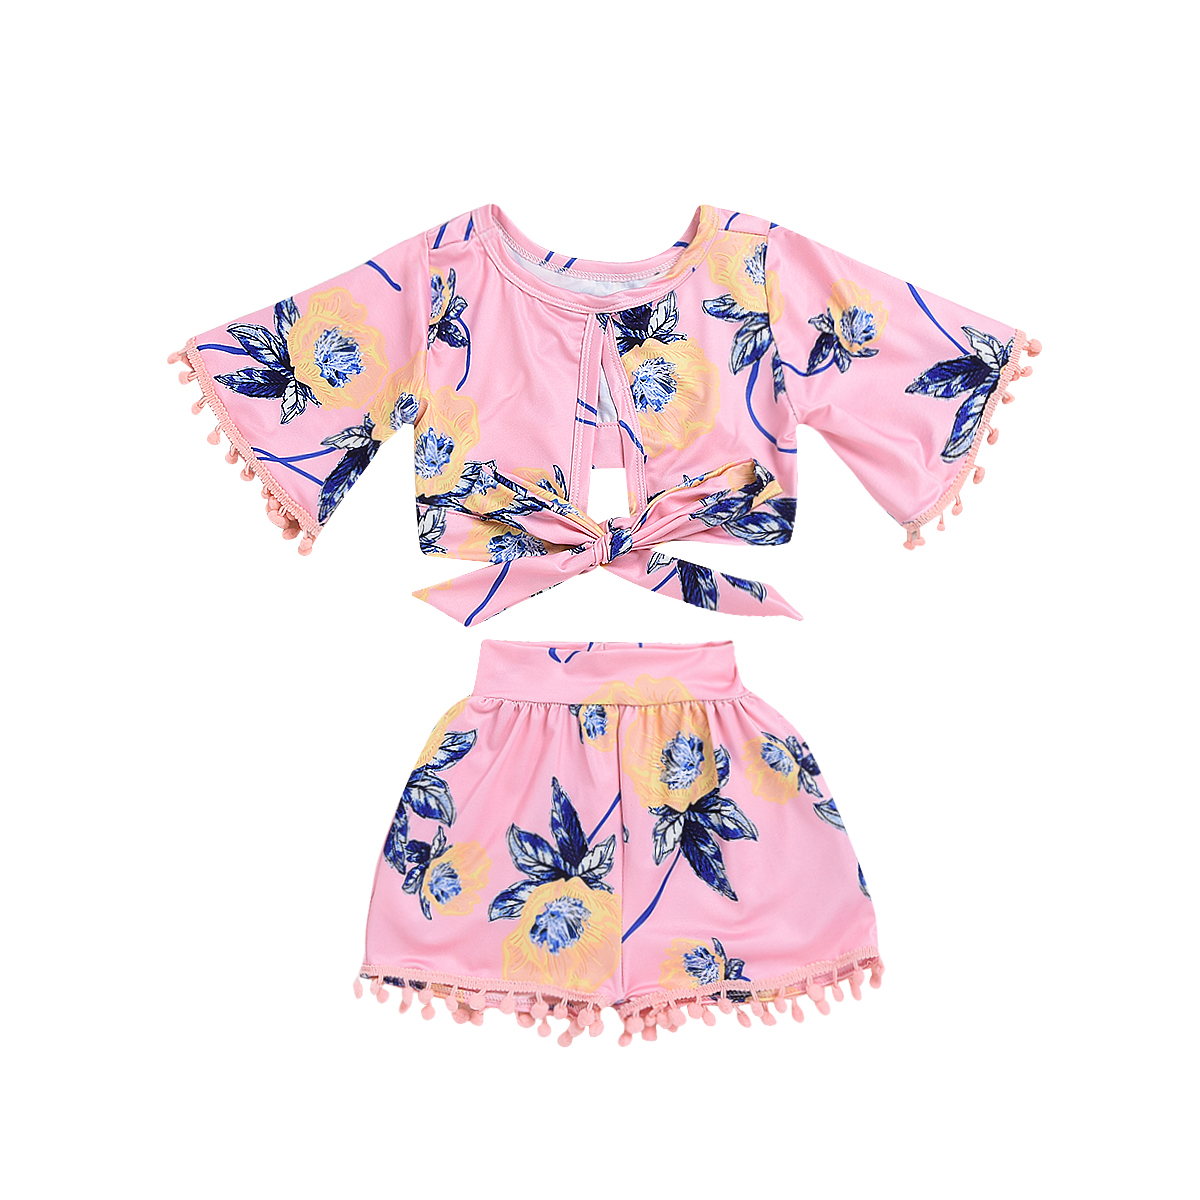 все цены на Pudcoco Toddler Girl Summer Clothing Set T-shirt Tops+Short Pants Outfits Kids Baby Girl Flower Tassel Clothes 2pcs онлайн